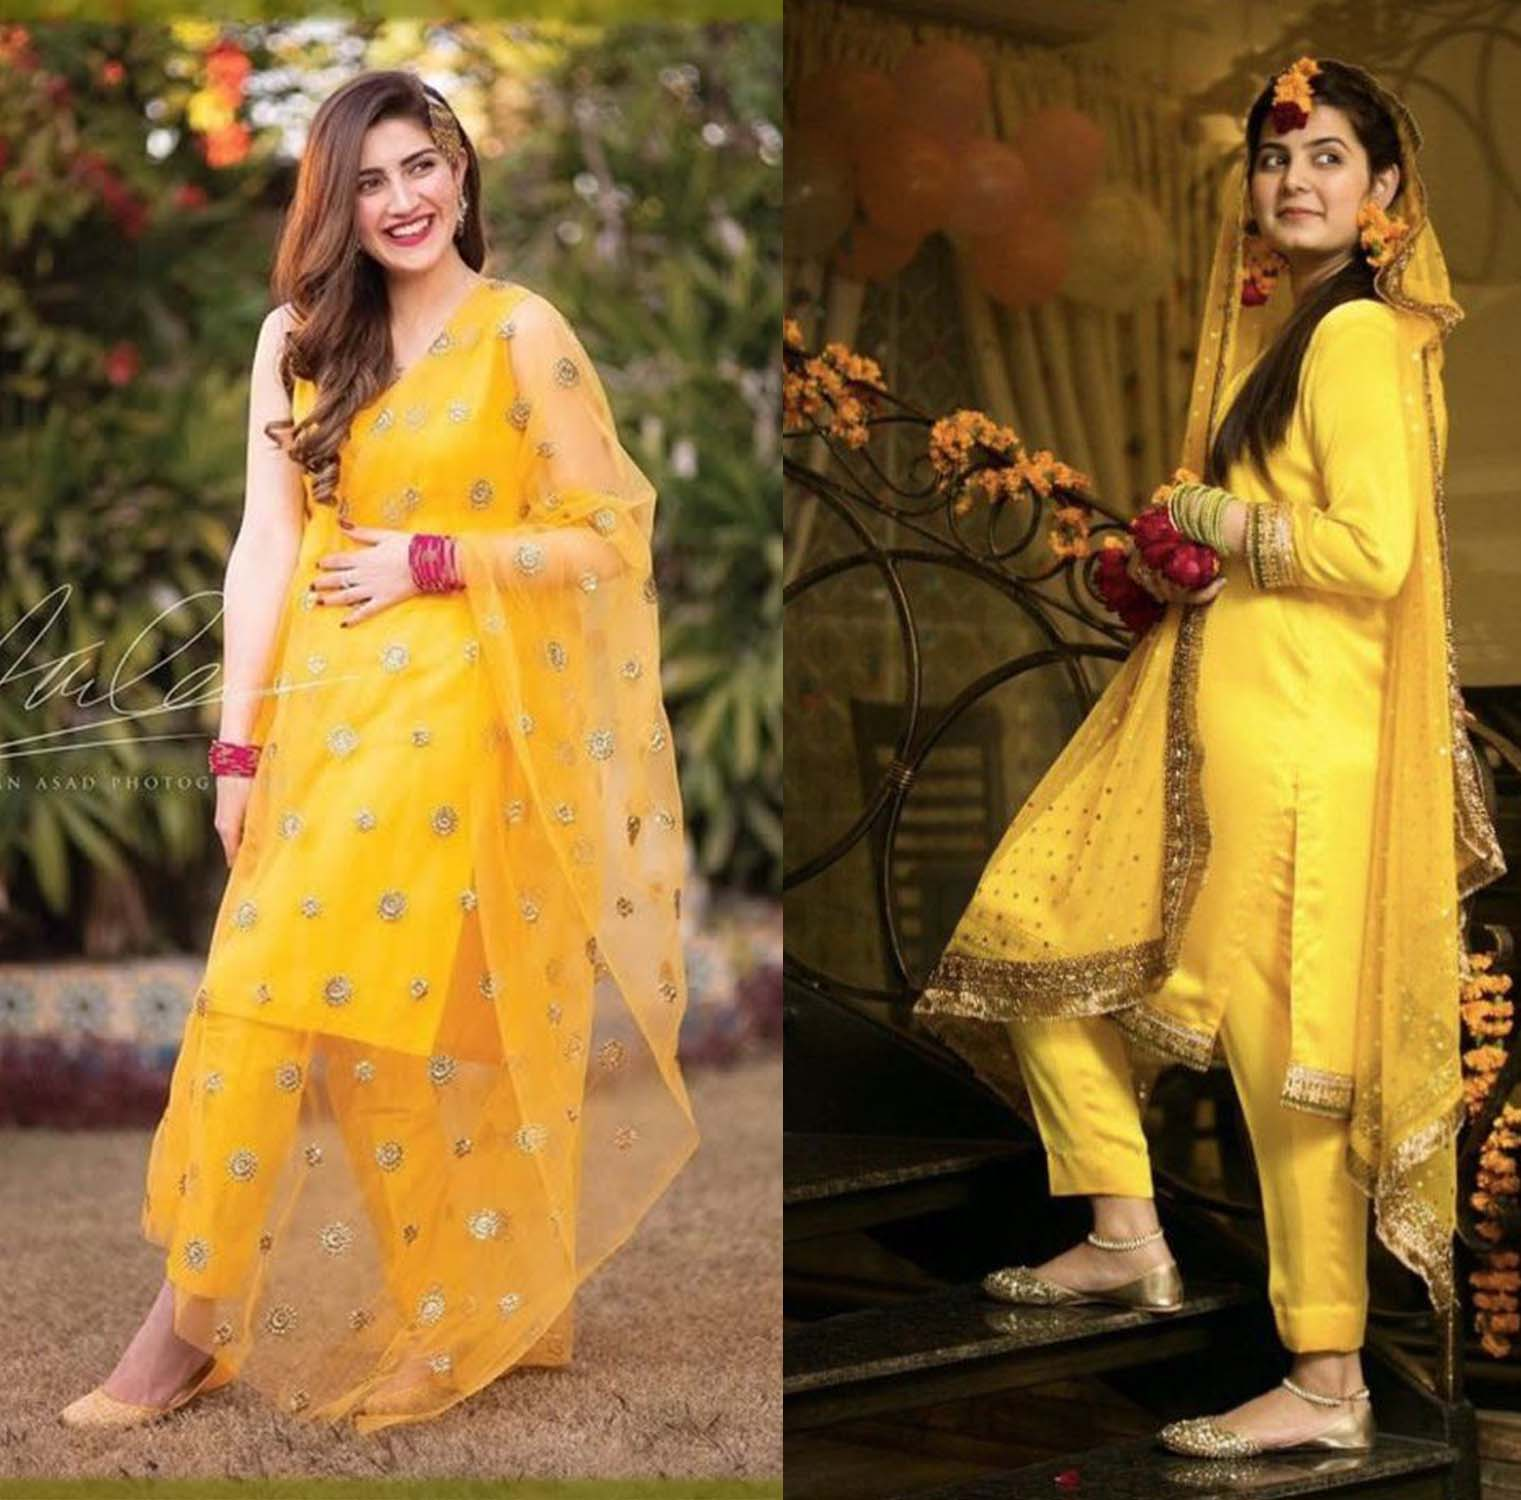 Bridal Mehndi Dresses 2020 Latest Trends In Pakistan